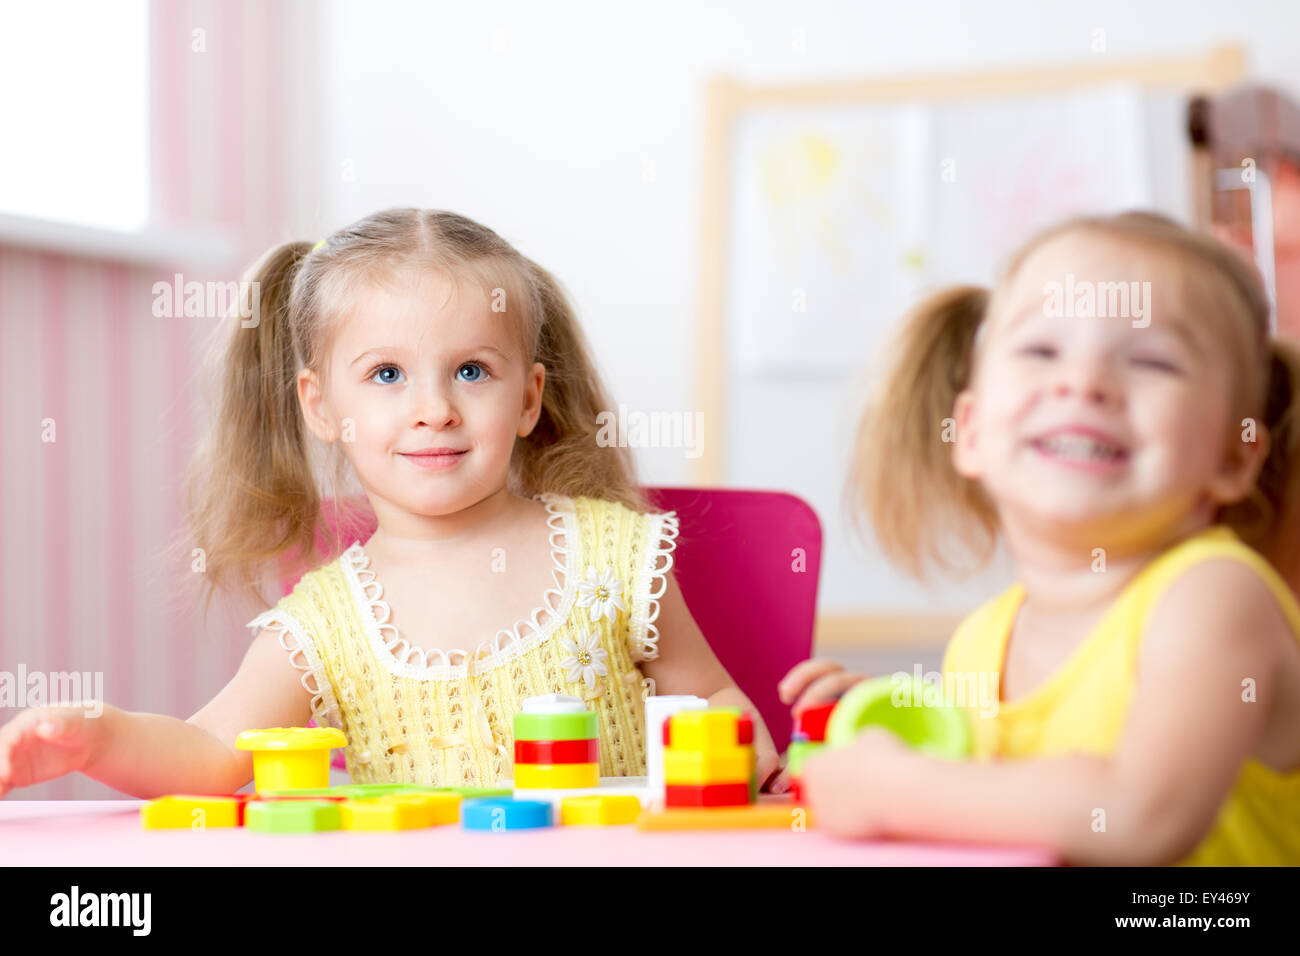 Kids playing with wooden blocks sitting at table in their room - Stock Image